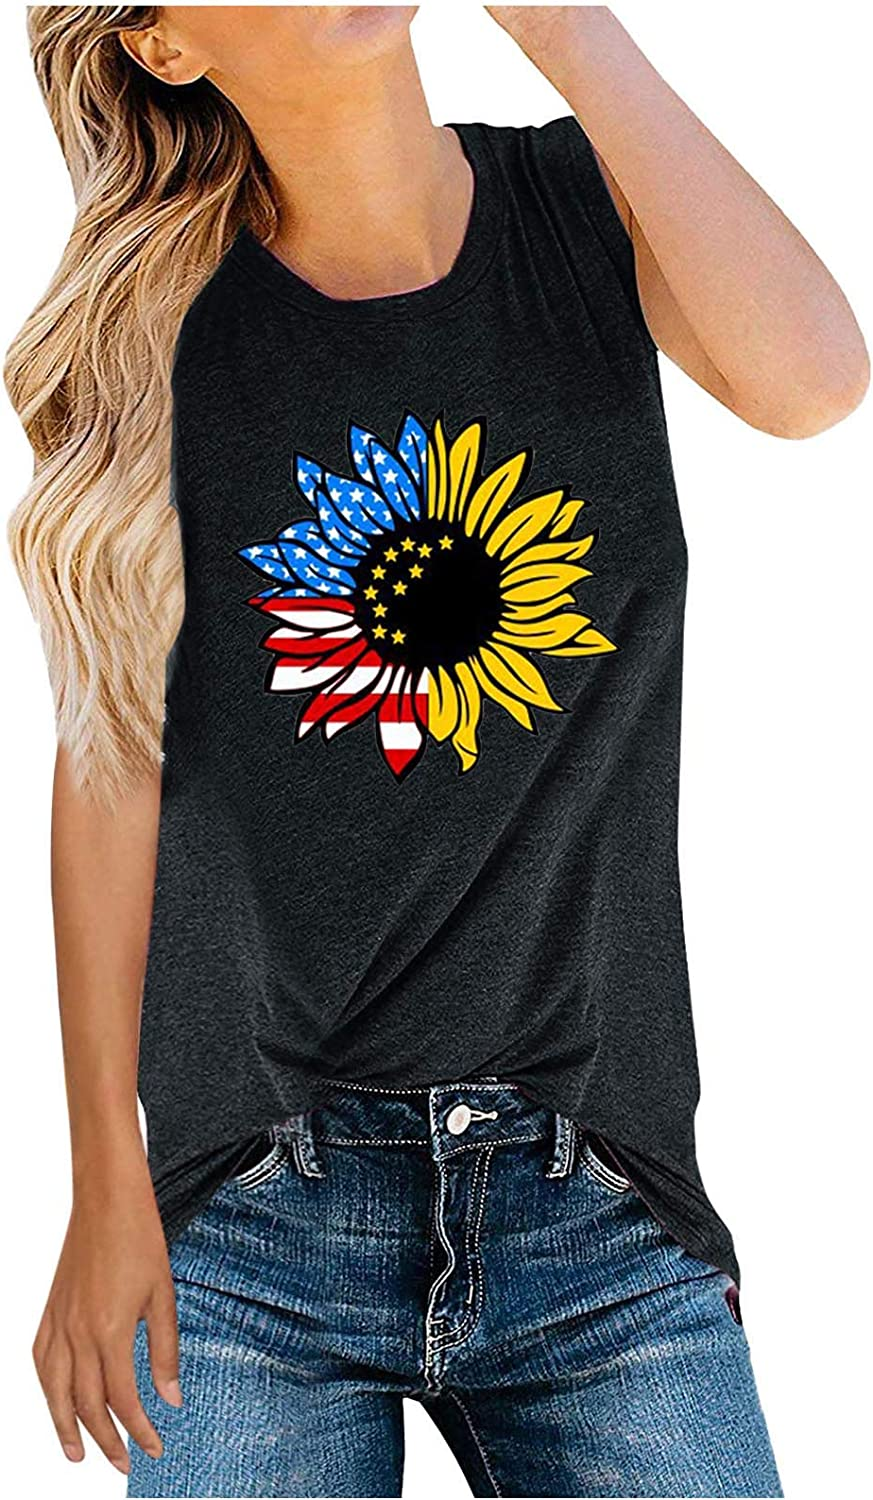 Tops for Women Casual Summer Plus Size,Womens Flag Print Summer Sexy Sleeveless T-Shirts Tank Top